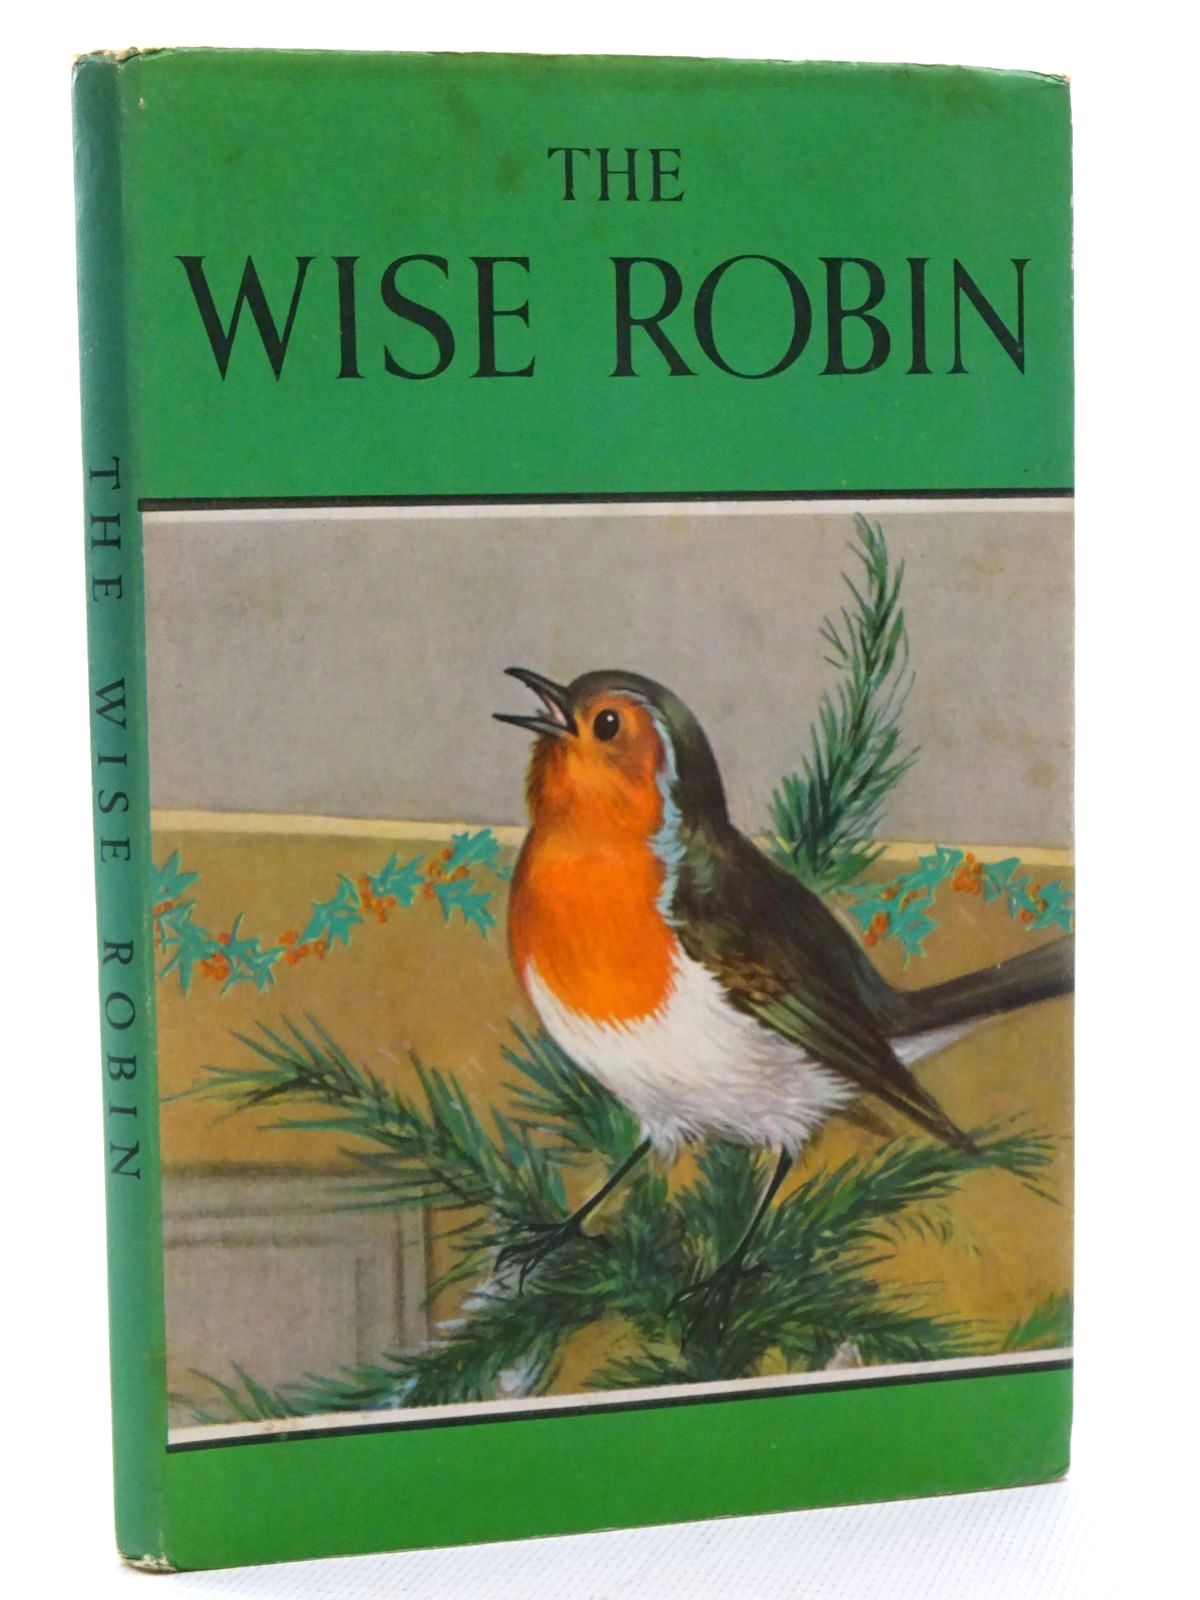 Photo of THE WISE ROBIN written by Barr, Noel illustrated by Hickling, P.B. published by Wills & Hepworth Ltd. (STOCK CODE: 2125038)  for sale by Stella & Rose's Books